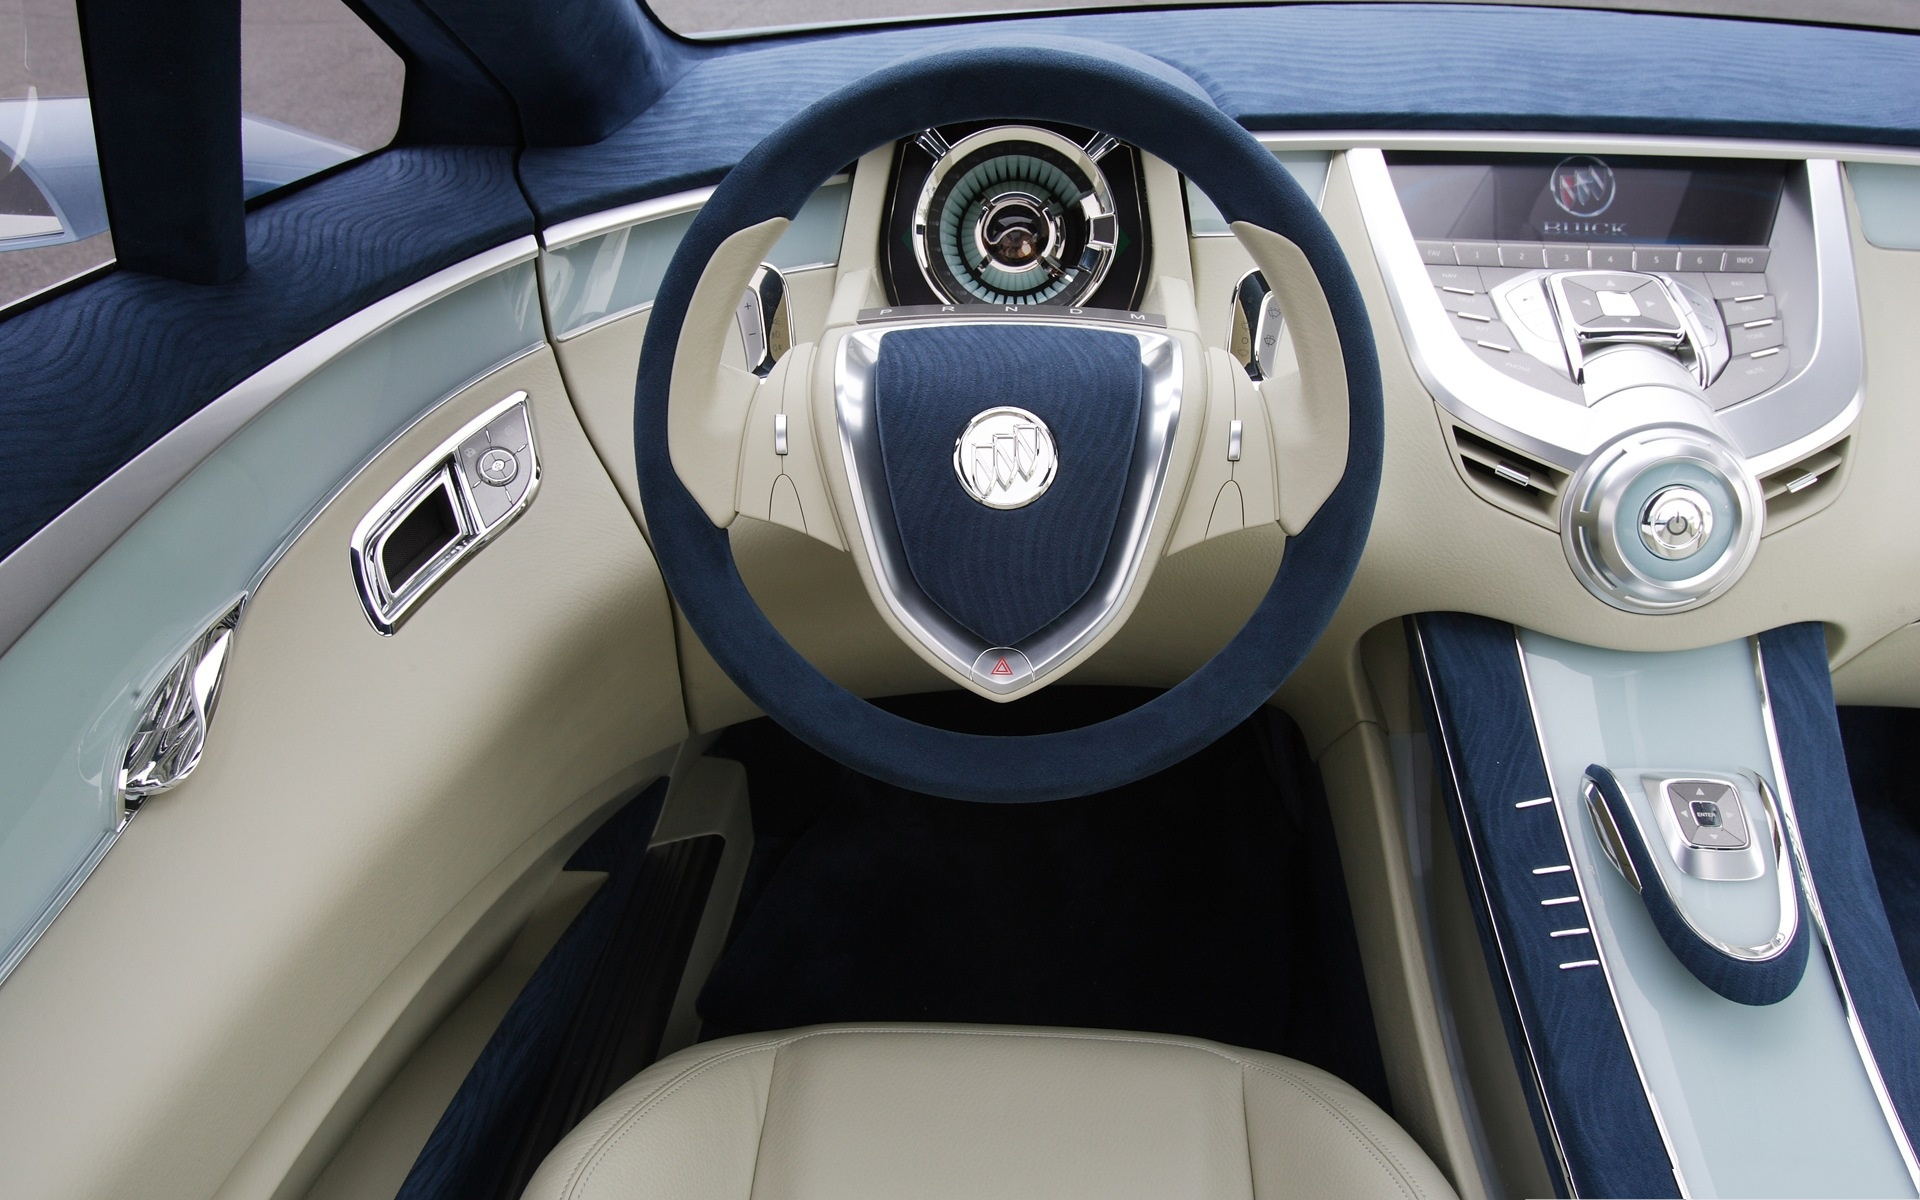 nice car as background buick car interior blue decorations incredible look 1920x1200 free. Black Bedroom Furniture Sets. Home Design Ideas